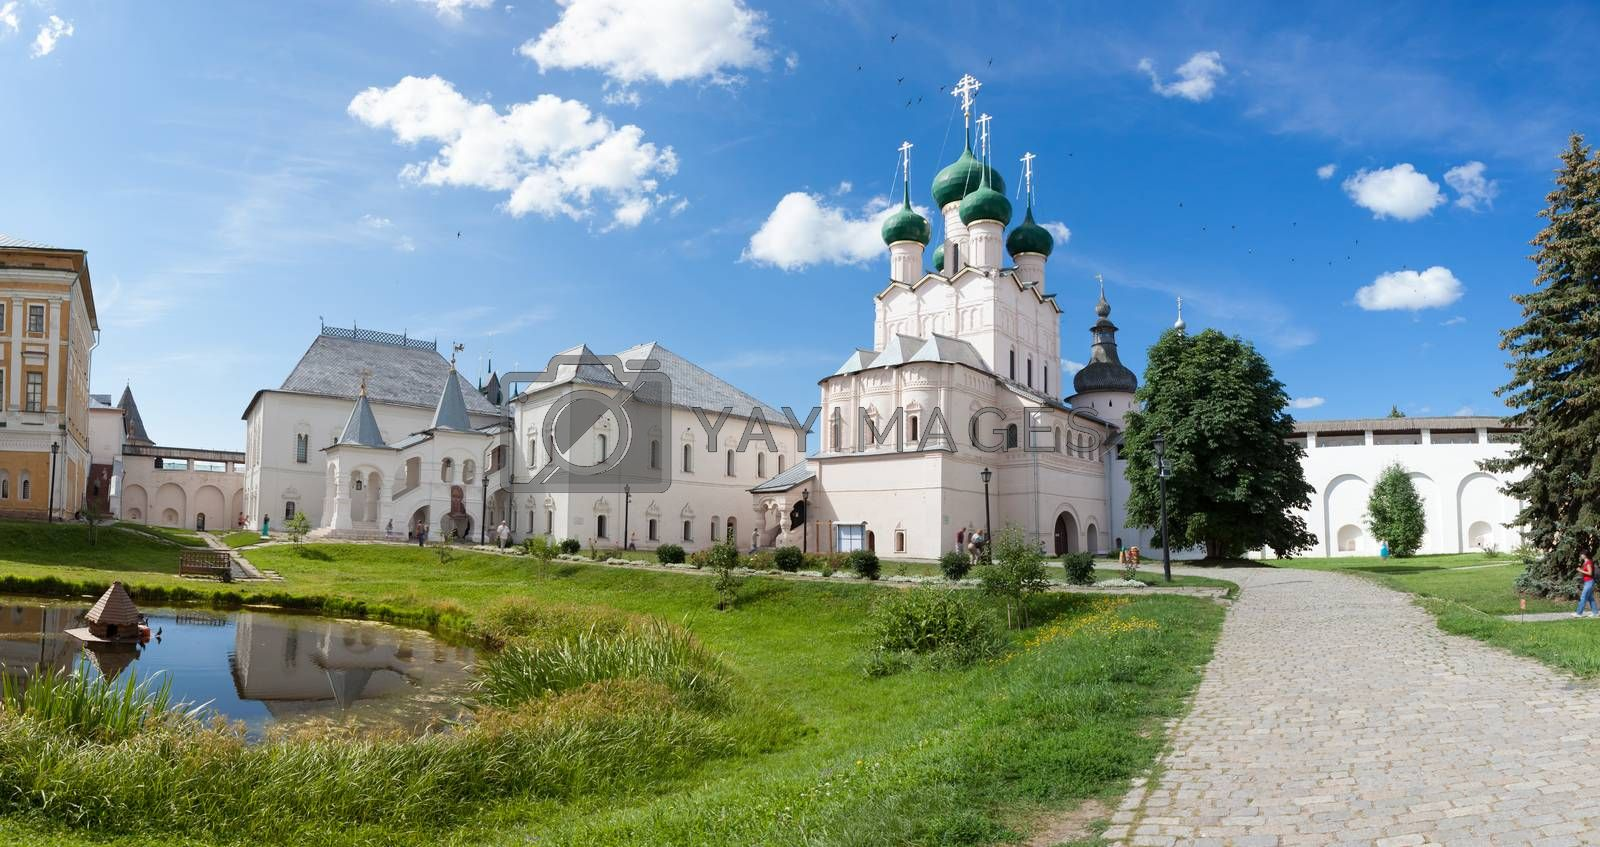 Panorama of the Kremlin in the city of Rostov, Russia